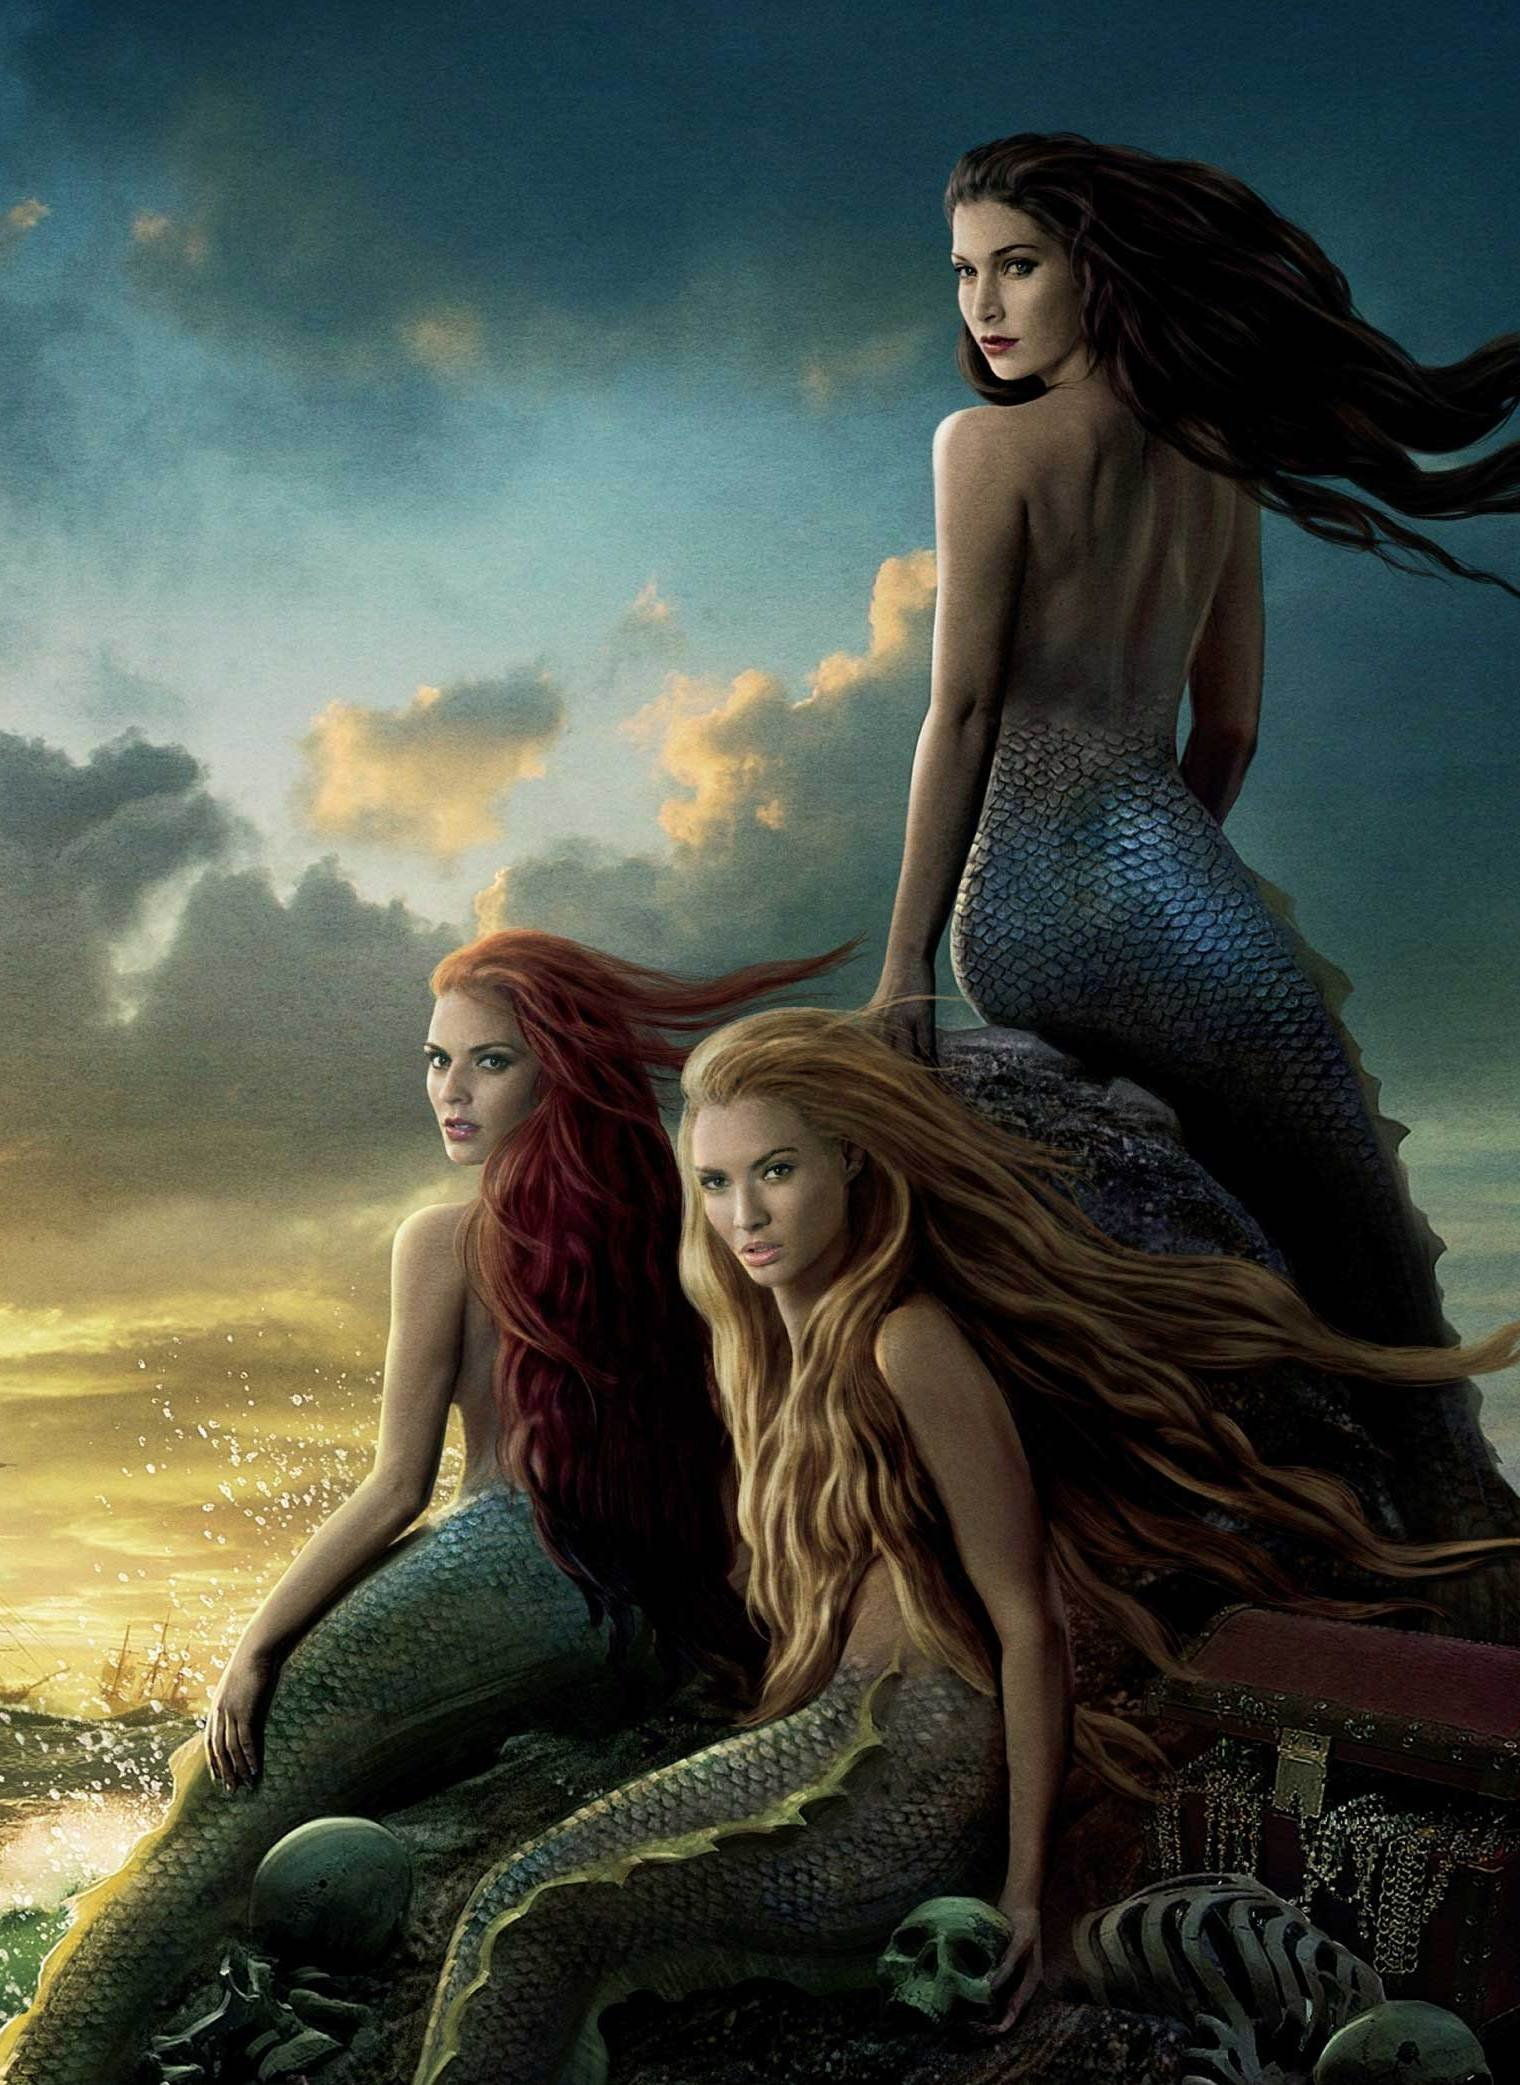 Mermaids with Scale Tails 1559.69 Kb